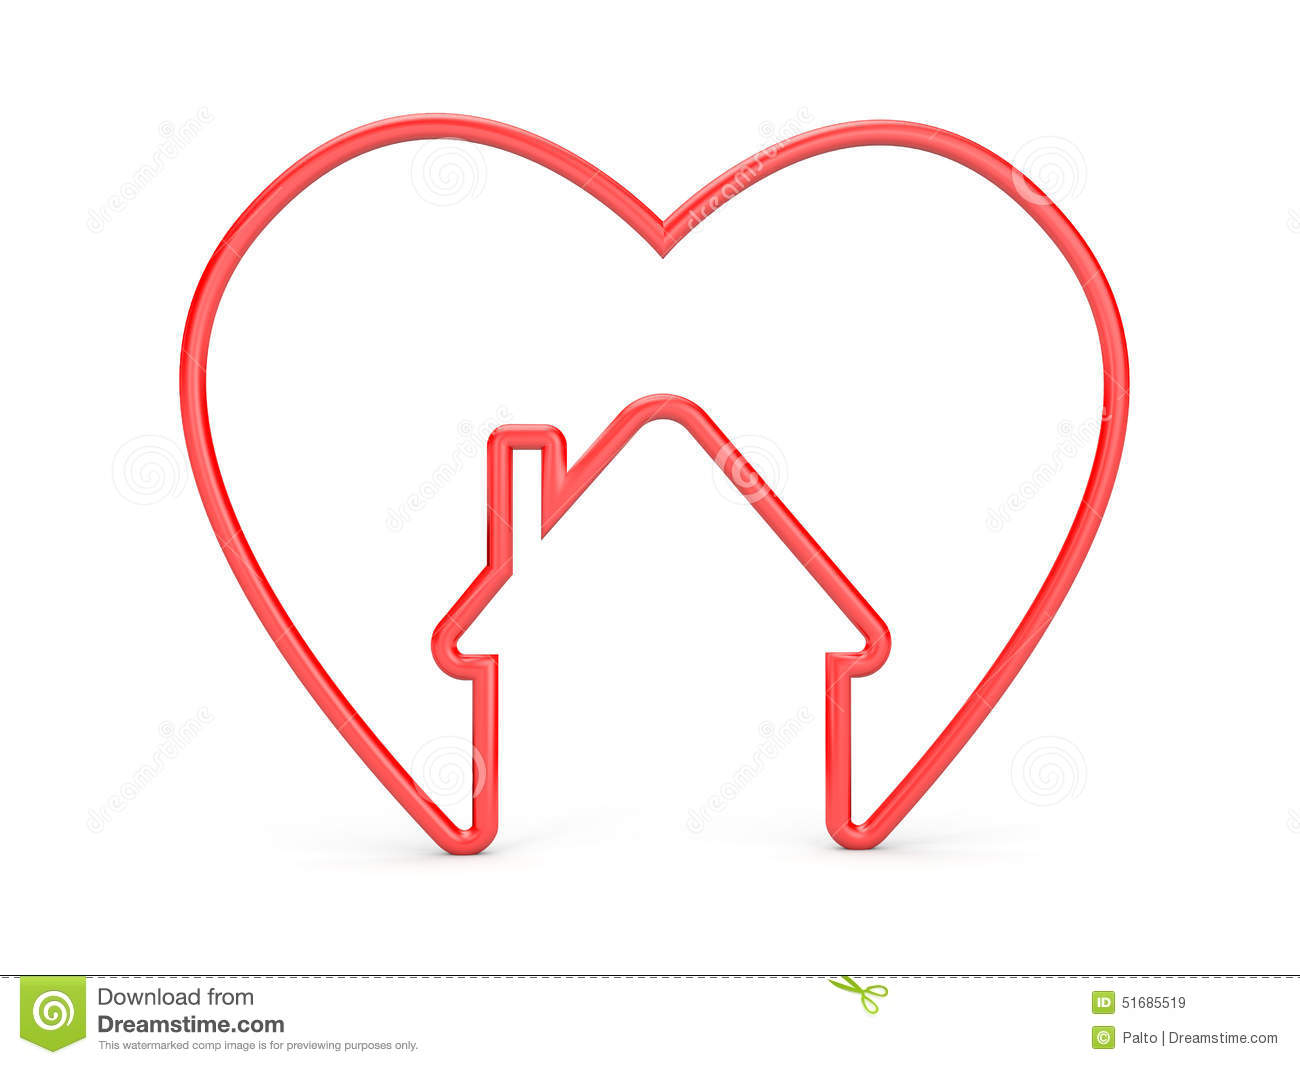 heart house shape symbol which shows us inside sweet home red 51685519